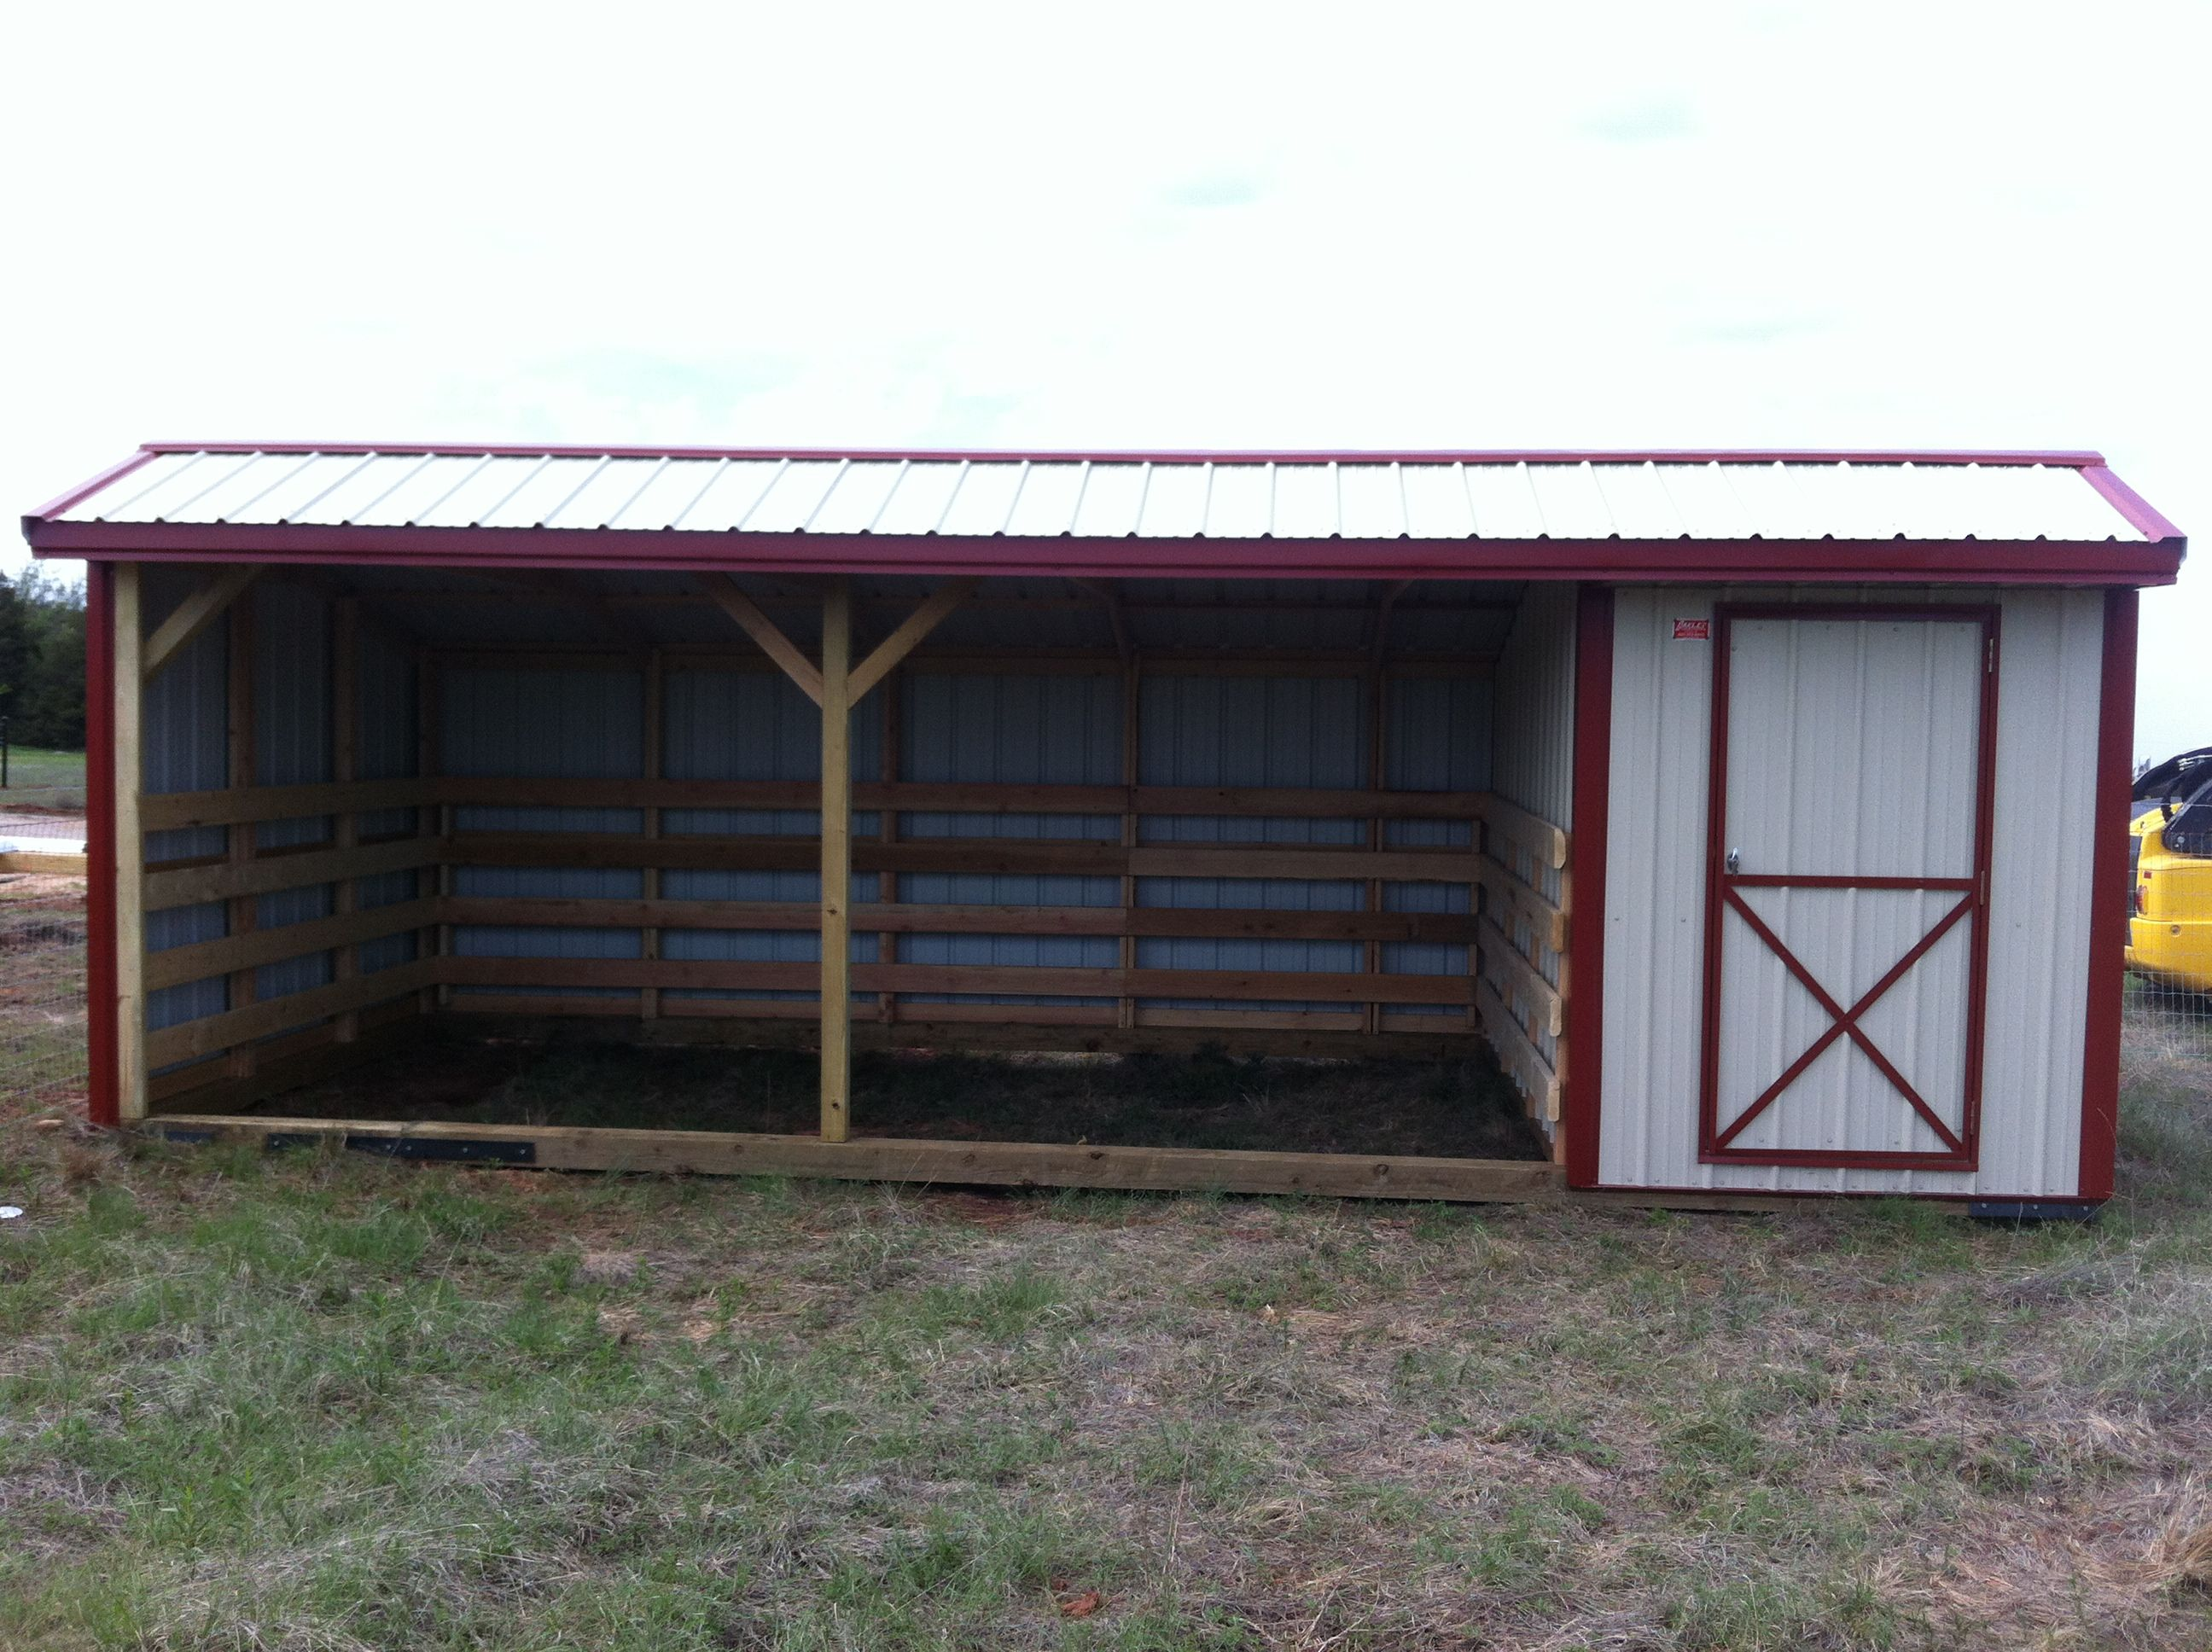 Horse barns run in sheds and horse stalls are small and portable